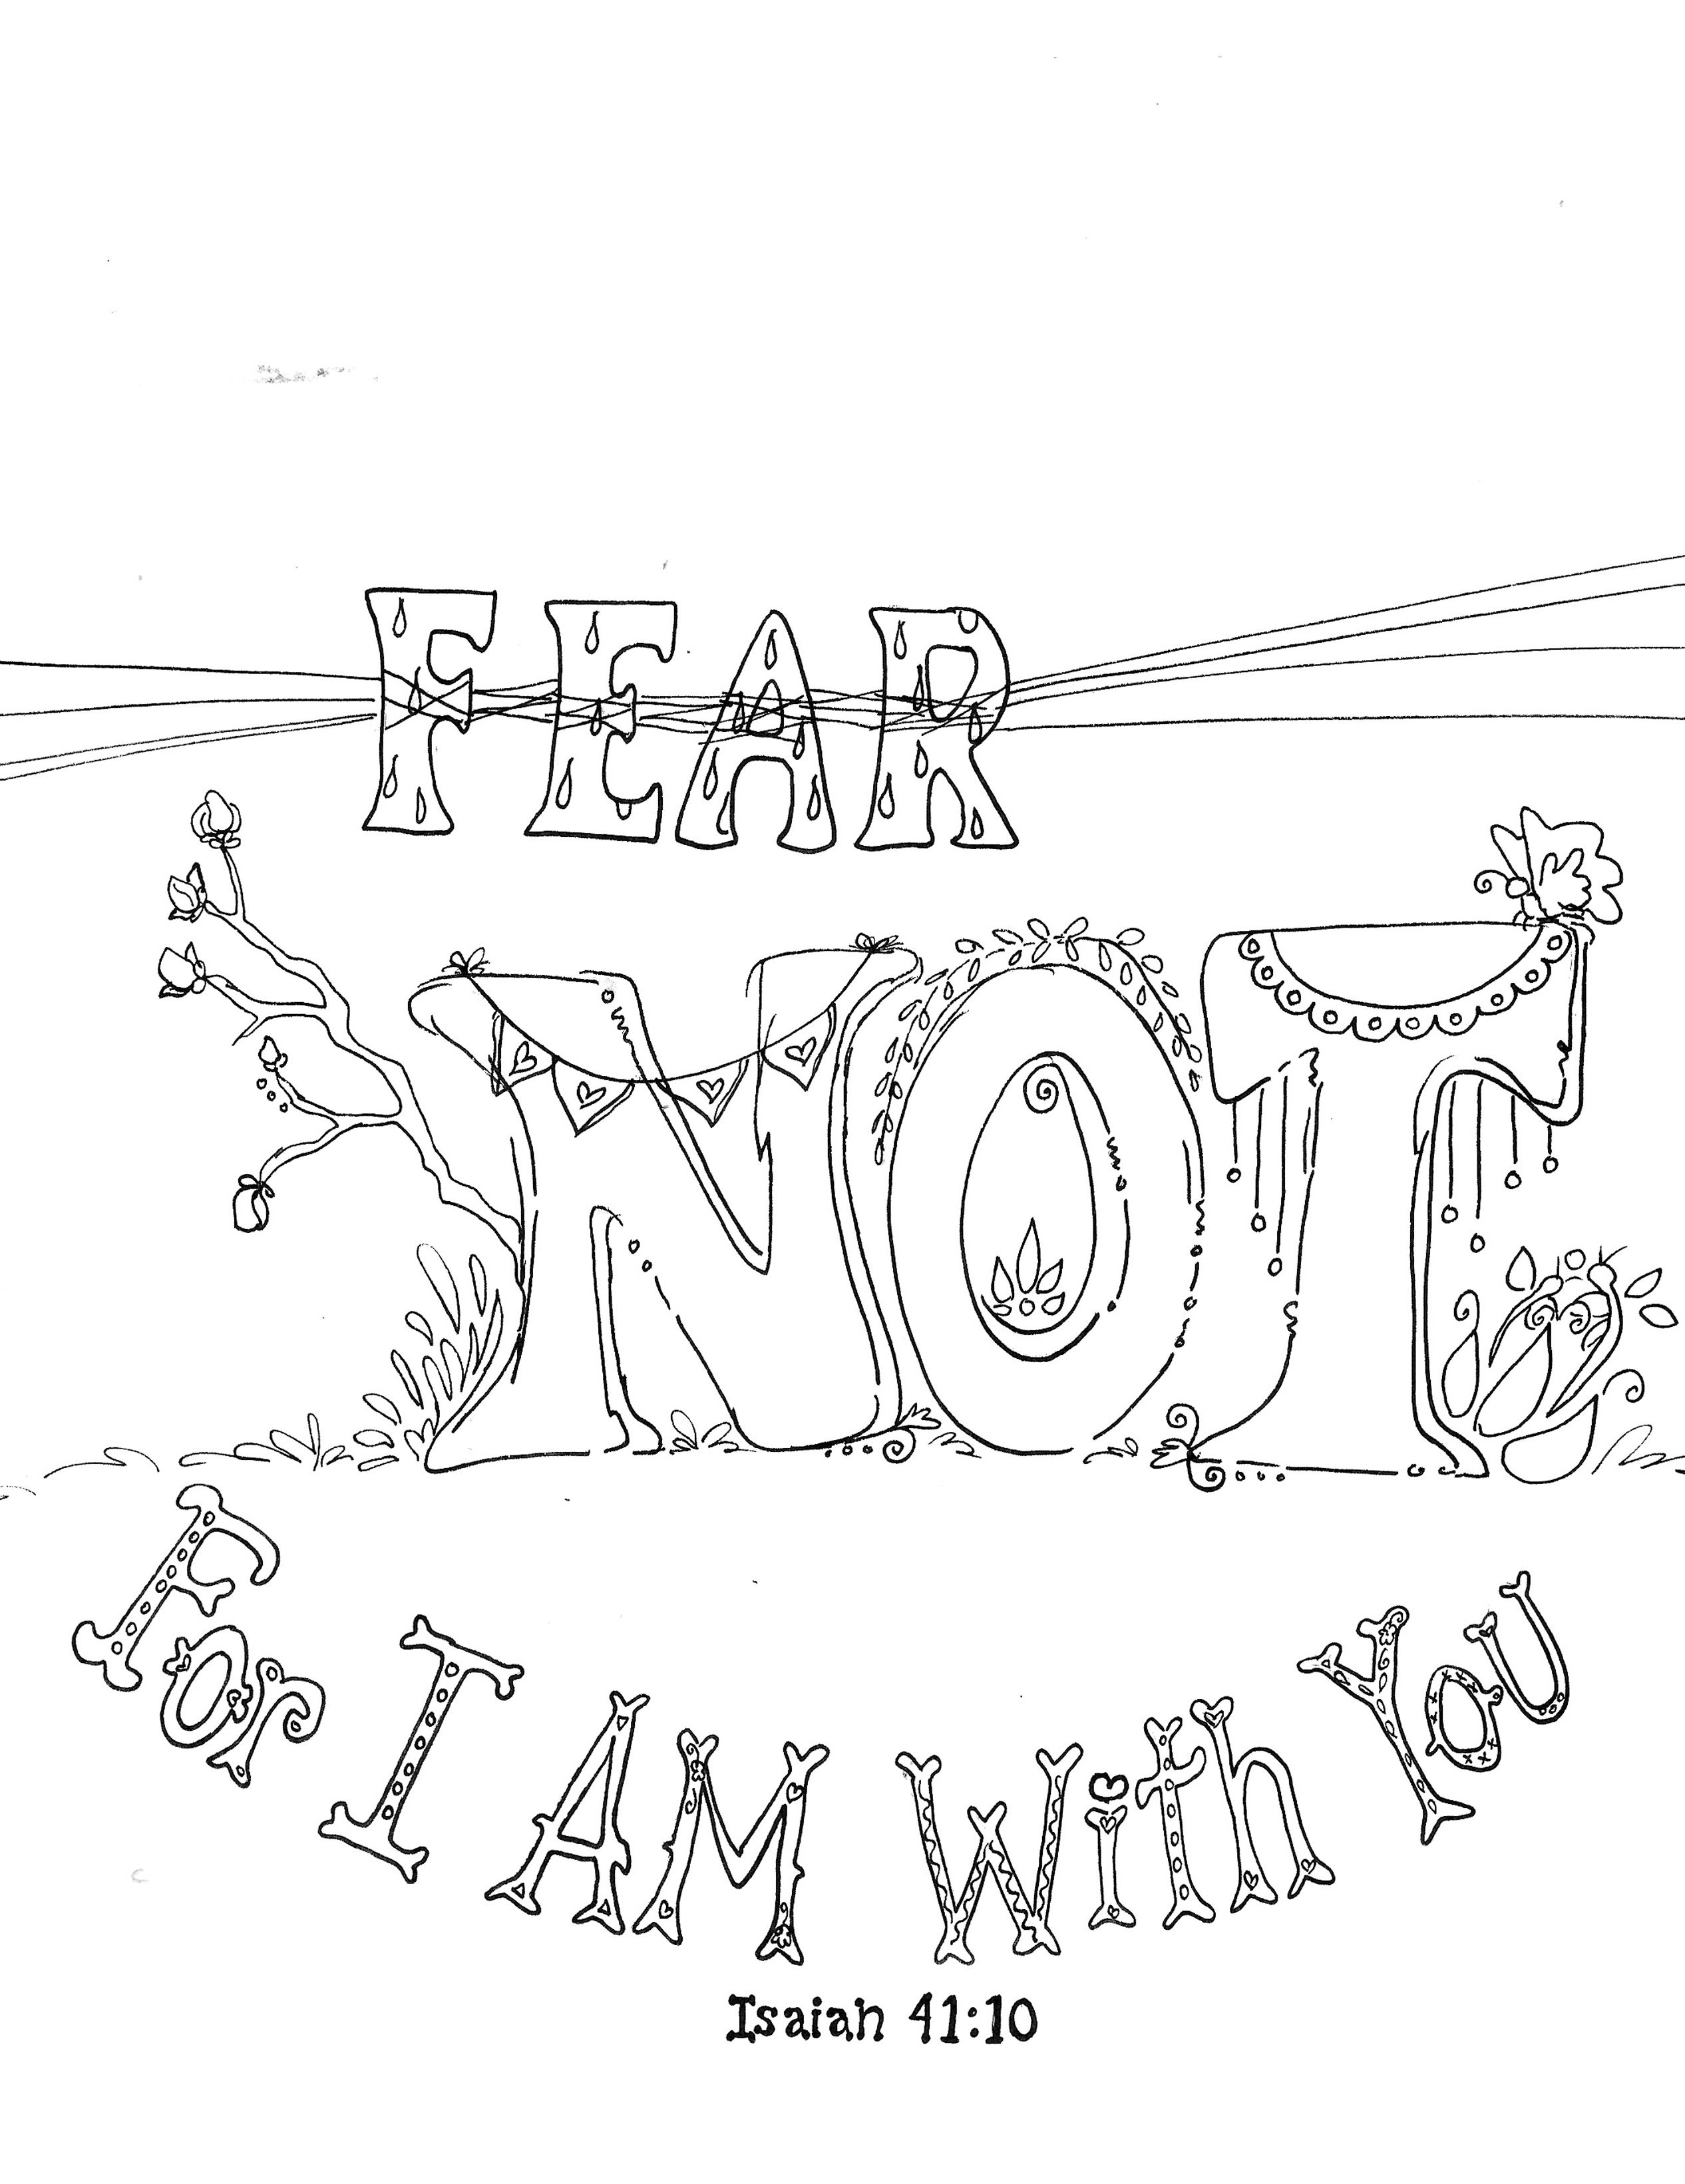 Worksheet About Fear